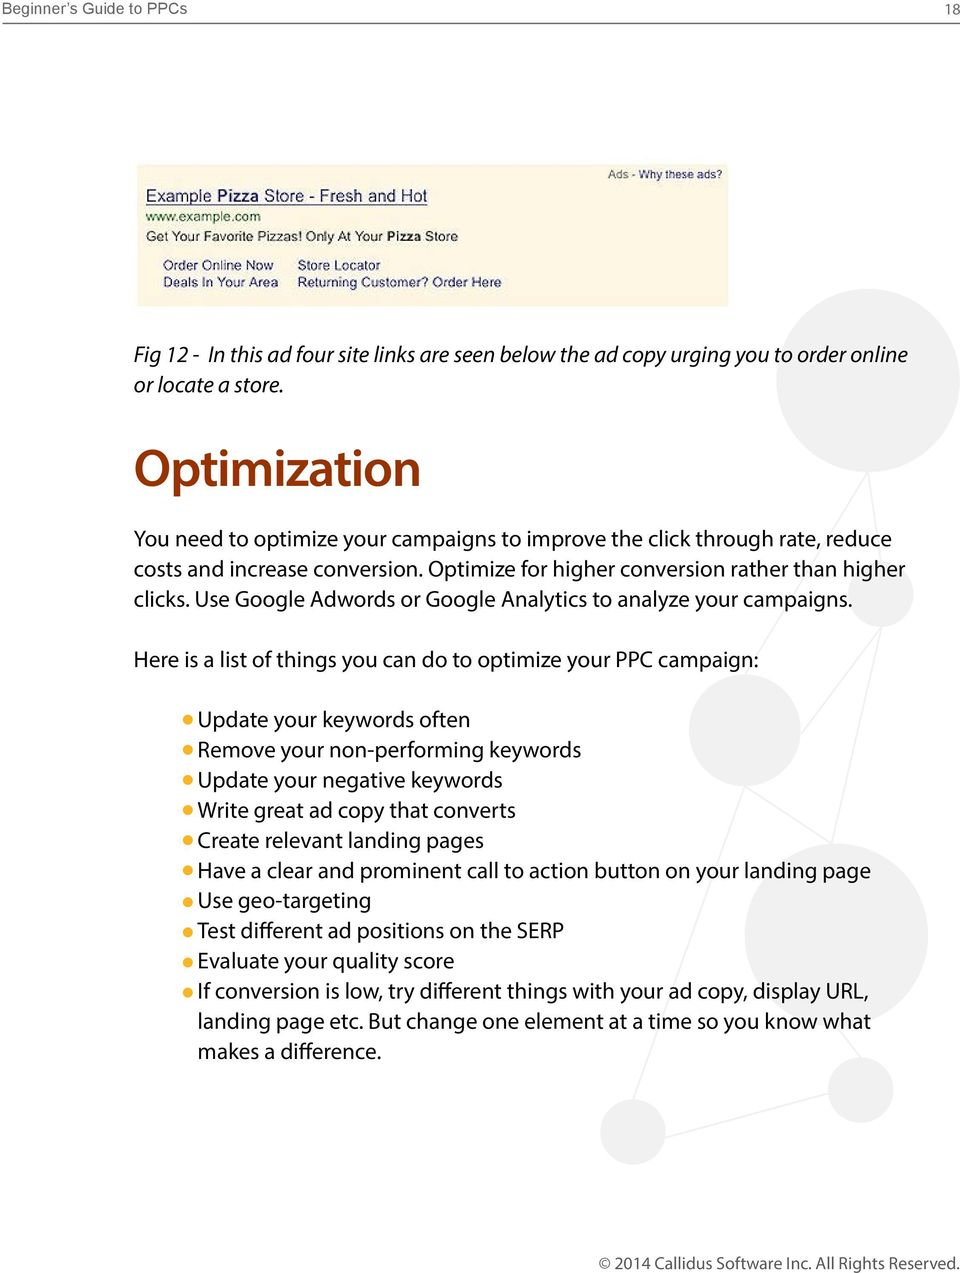 Use Google Adwords or Google Analytics to analyze your campaigns.